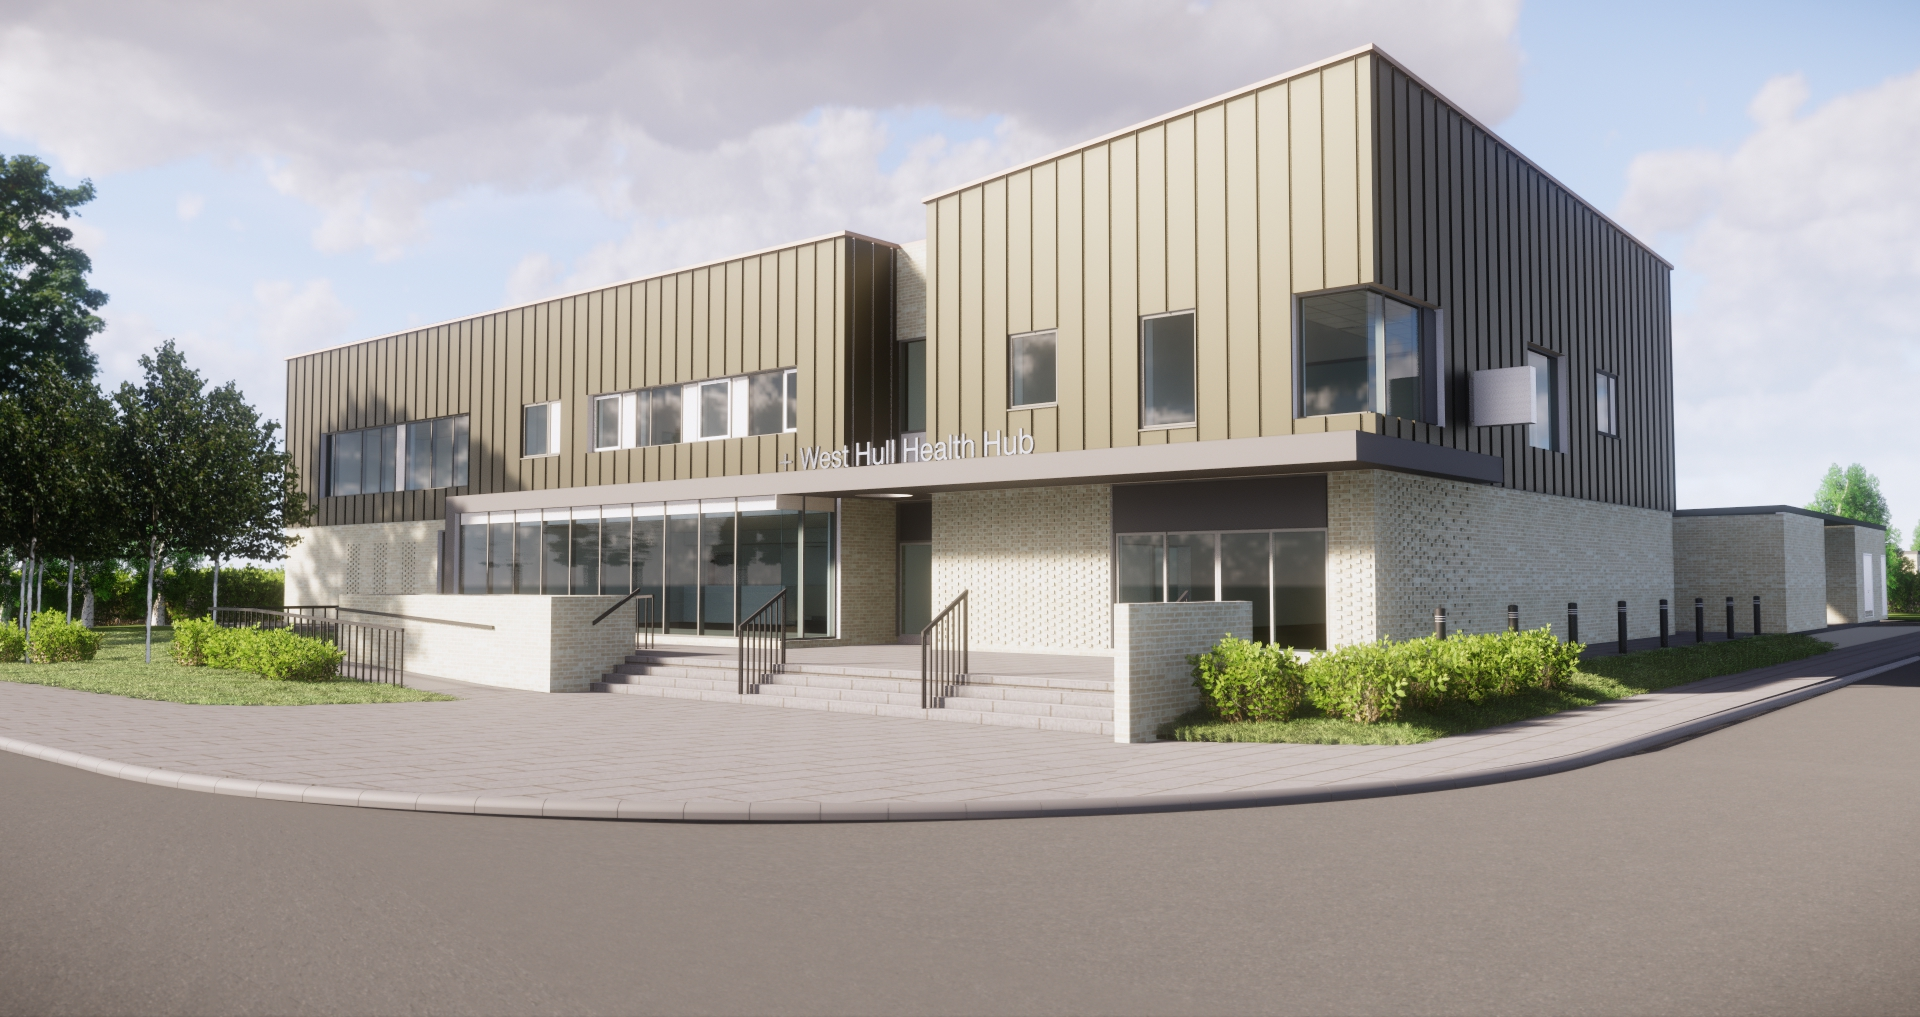 Patients to receive care in first class facilities as work set to begin on West Hull Health Hub